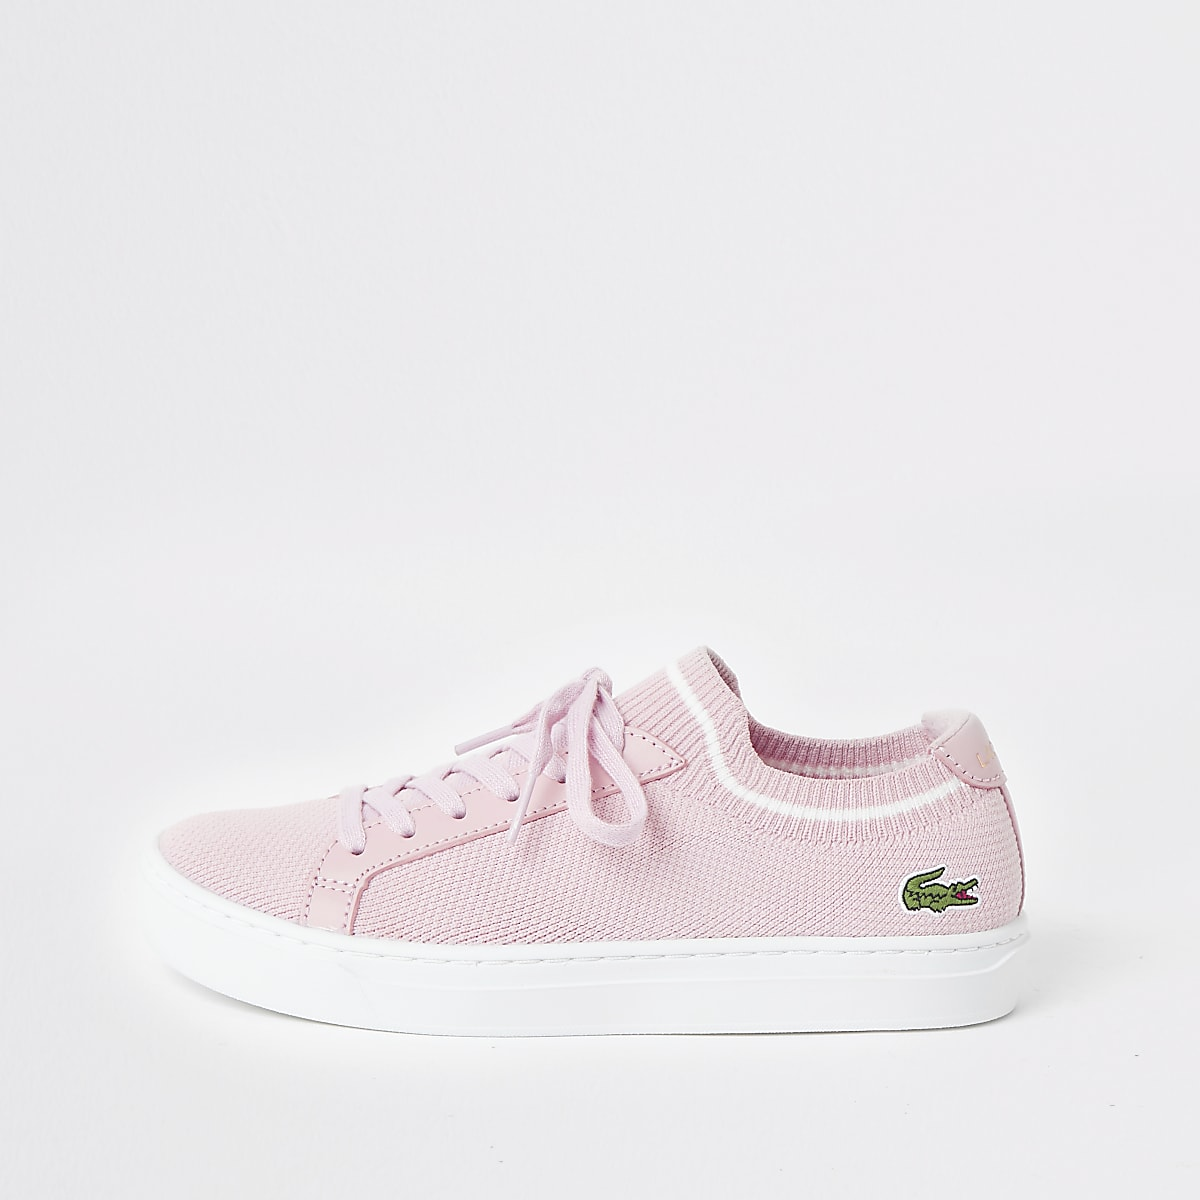 Lacoste pink la piquee lace-up sneakers